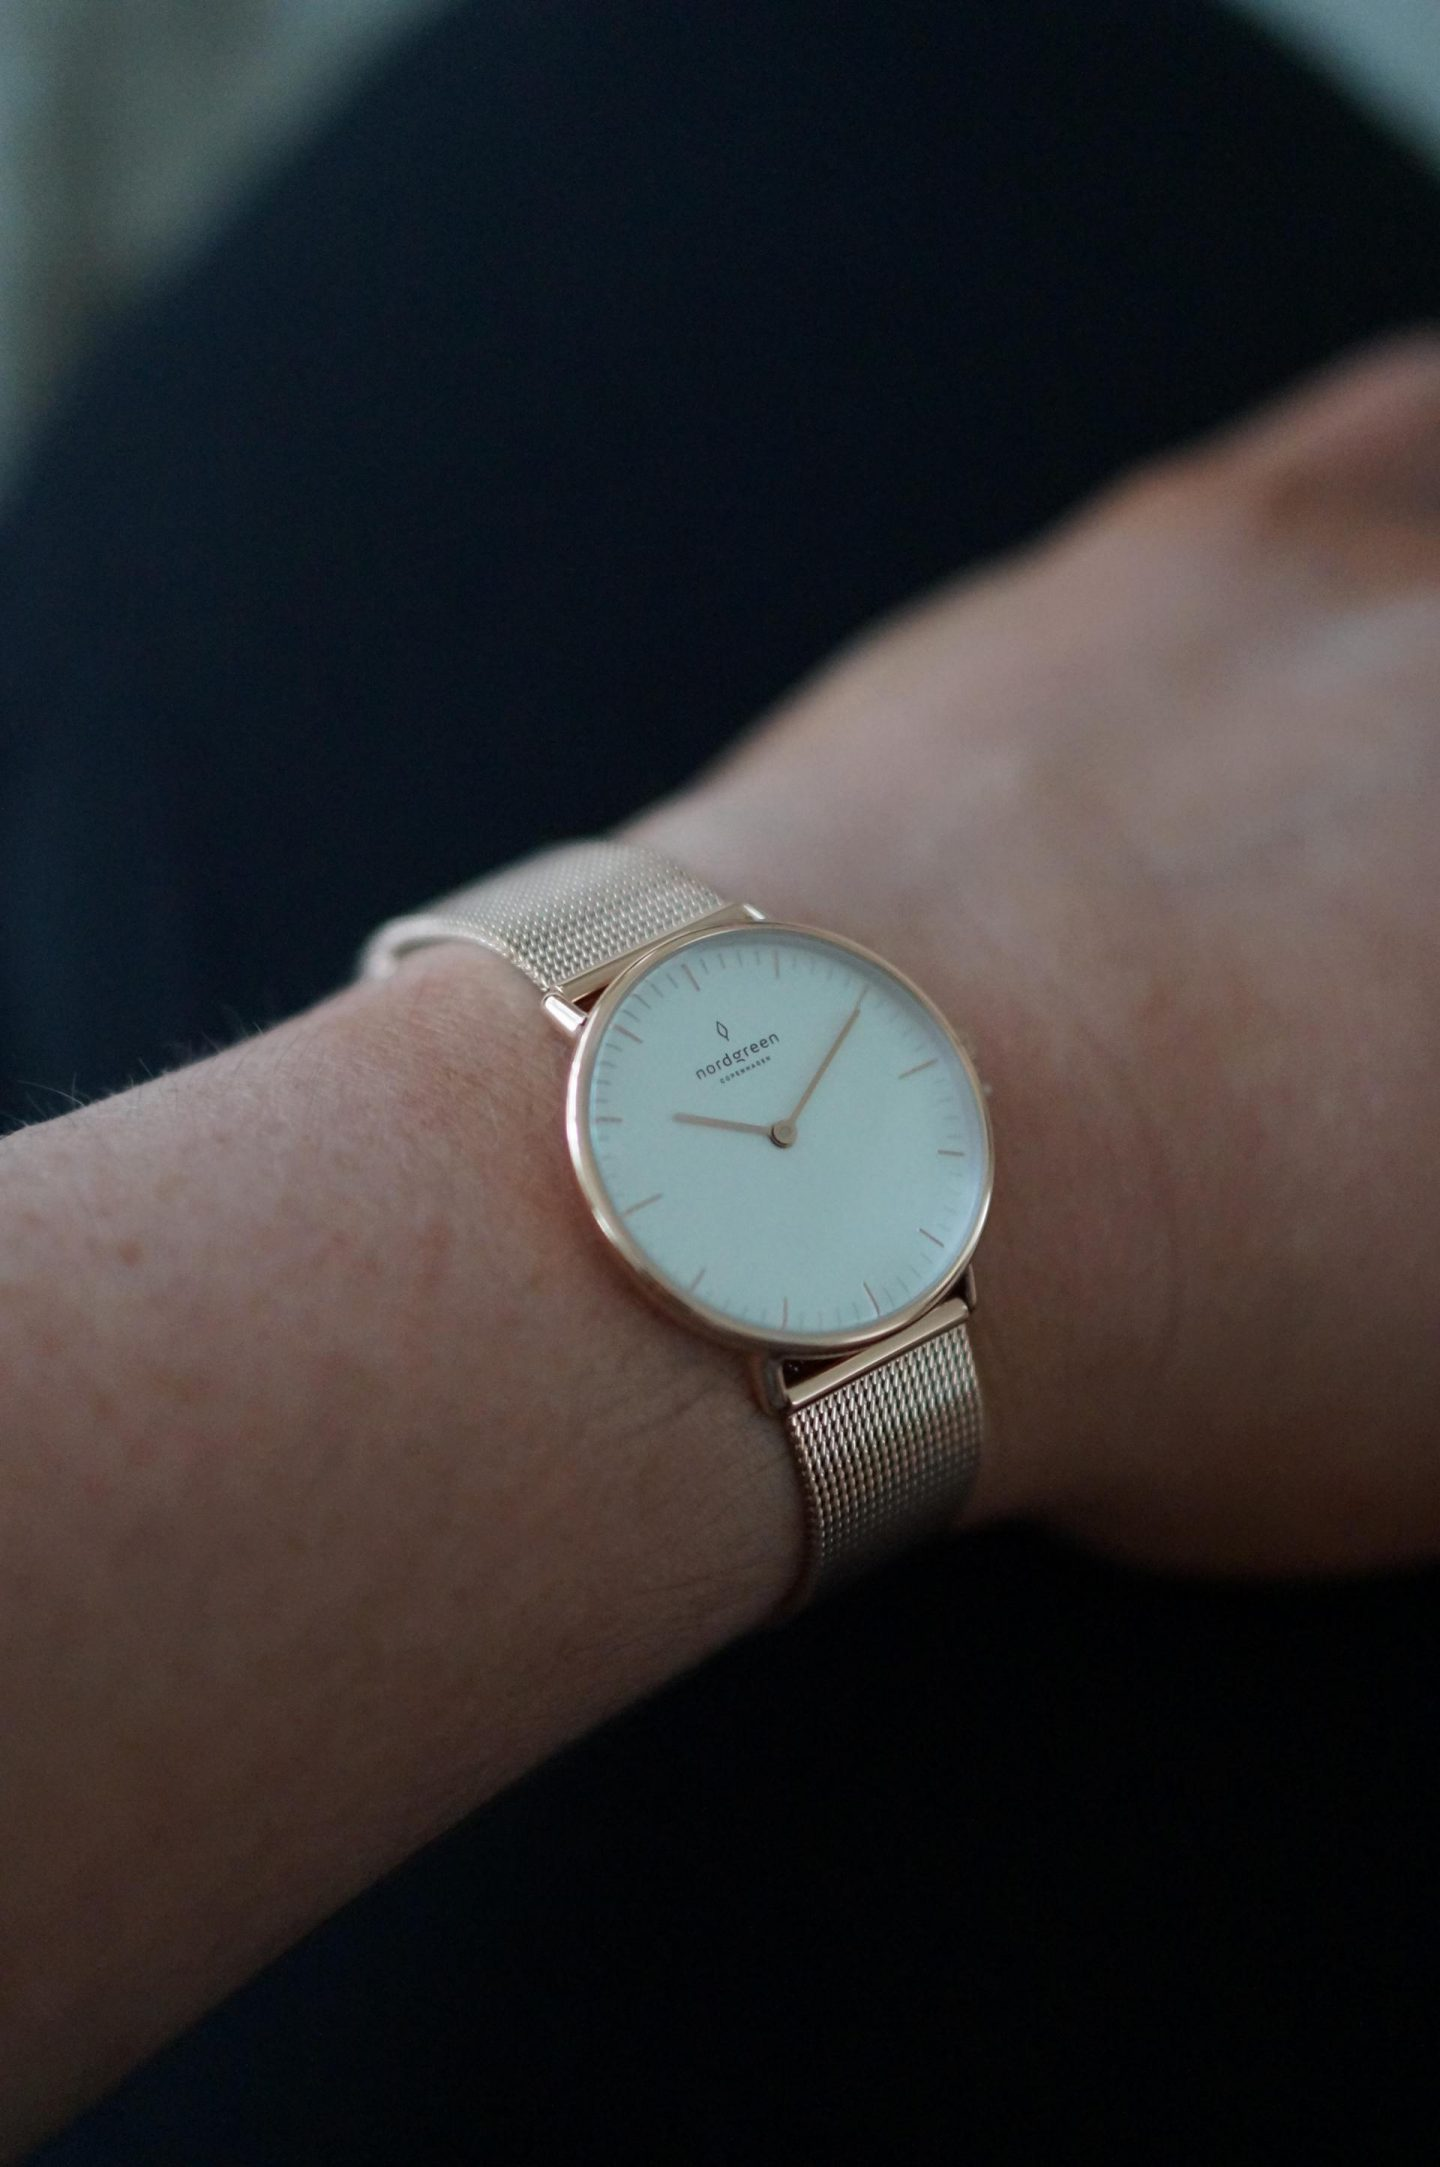 NC blogger Rebecca Lately is sharing her Nordgreen Watch review. If you are looking for a beautiful, sustainable watch, this is for you!